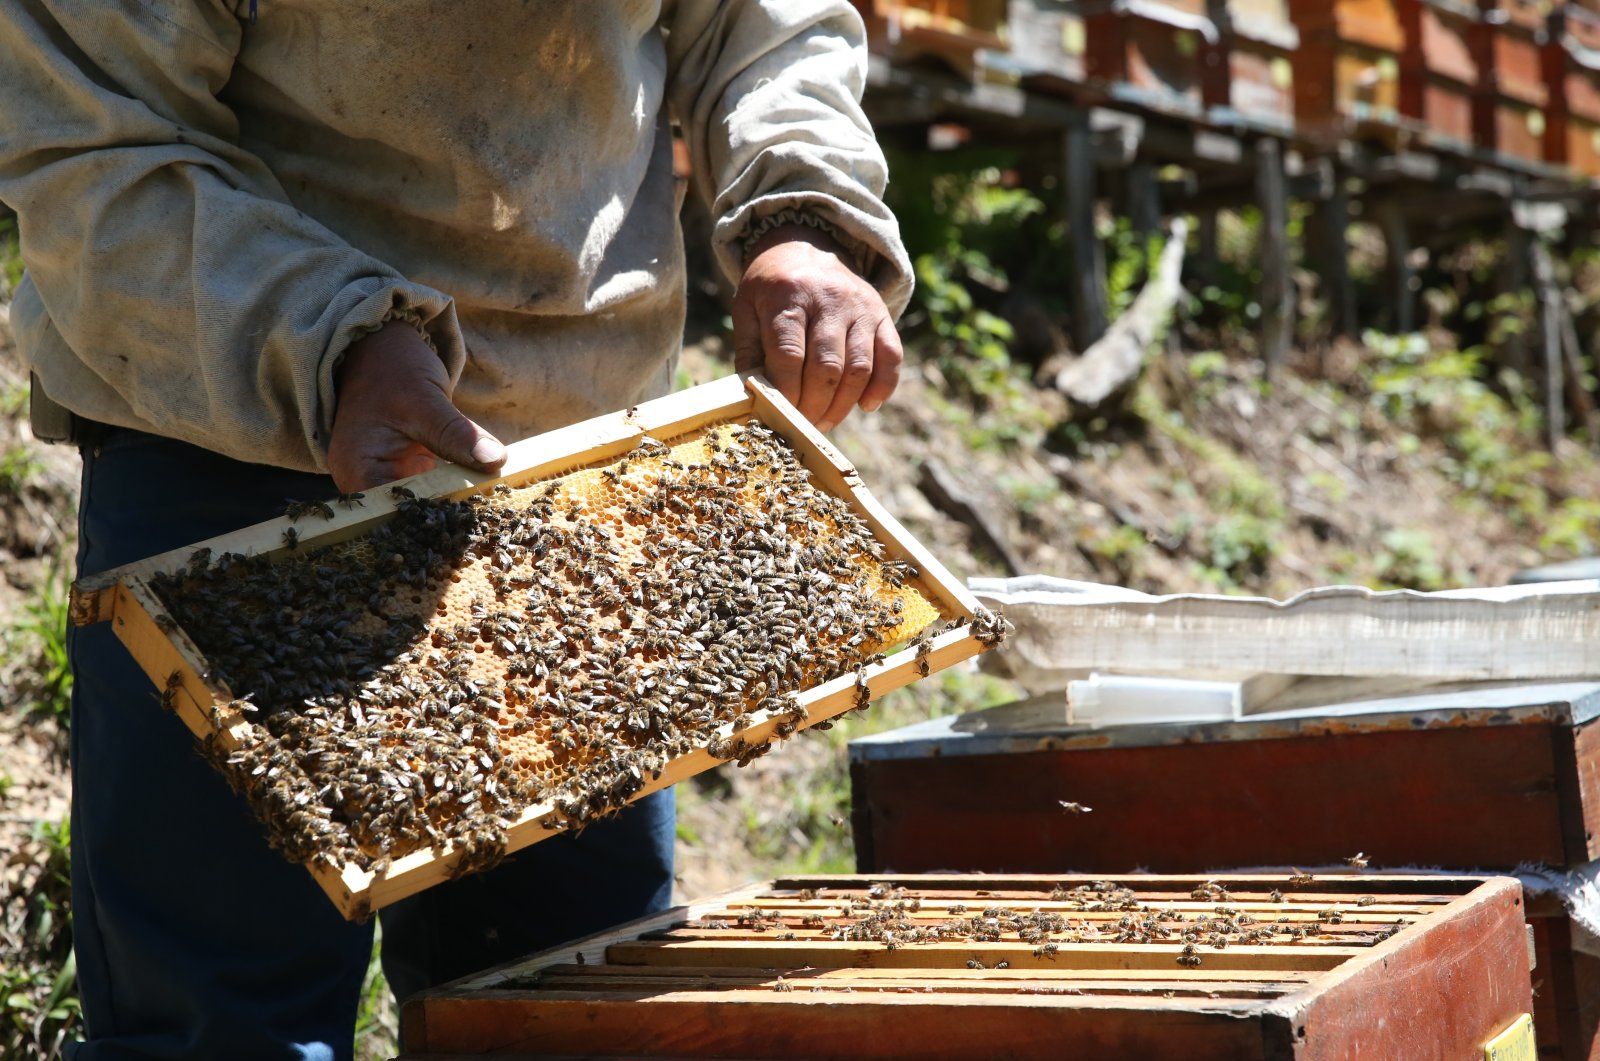 A beekeeper shows a honeycomb covered in honeybees, in Giresun, Turkey, May 17, 2021. (AA Photo)